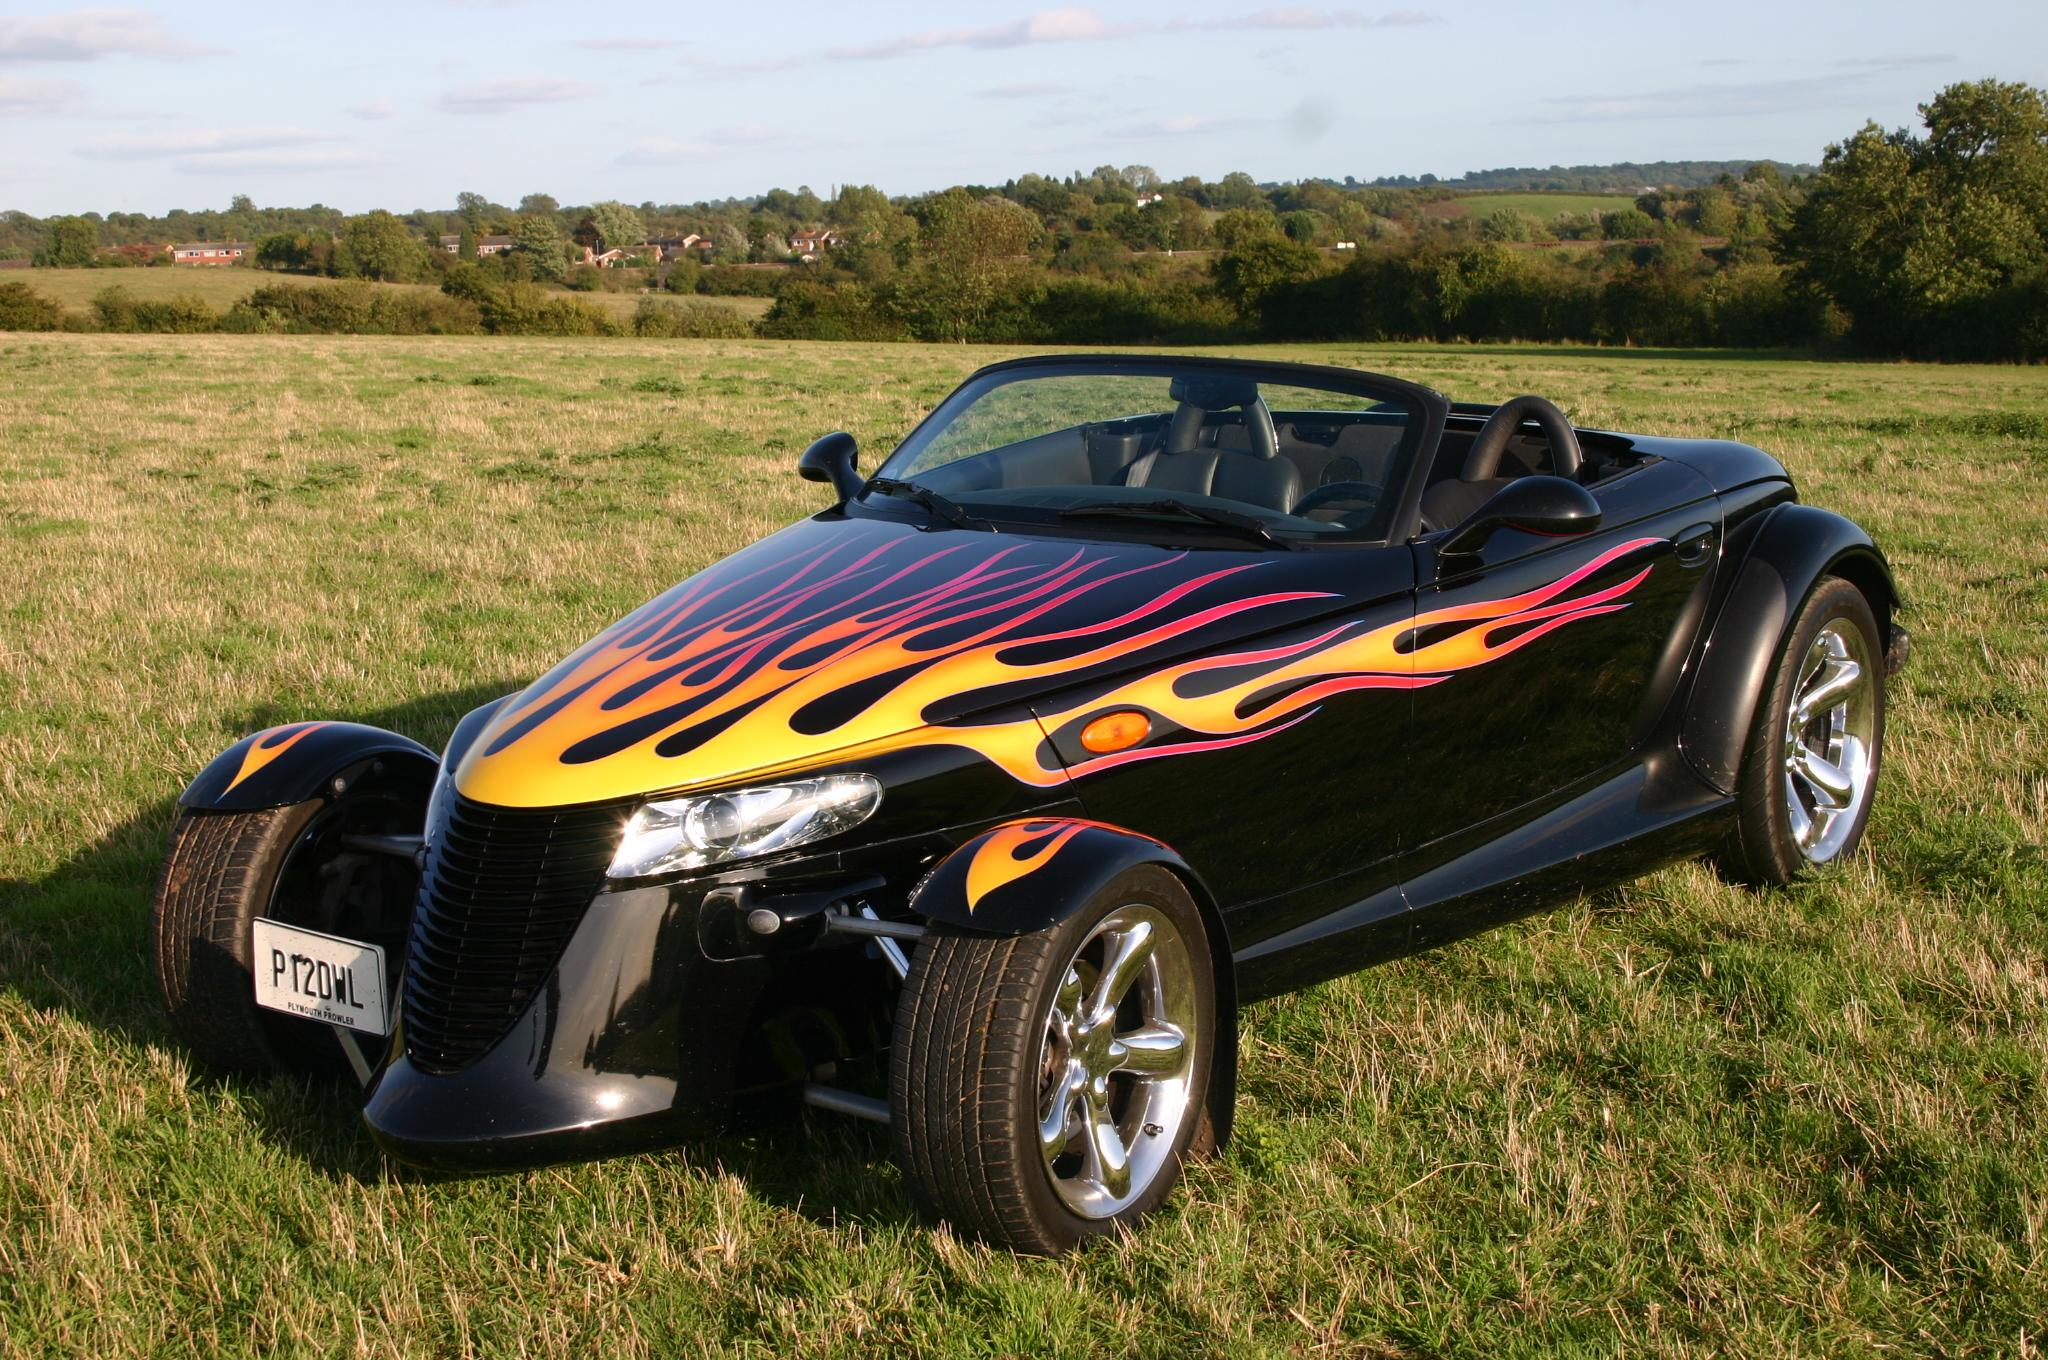 1997 Plymouth Prowler #26